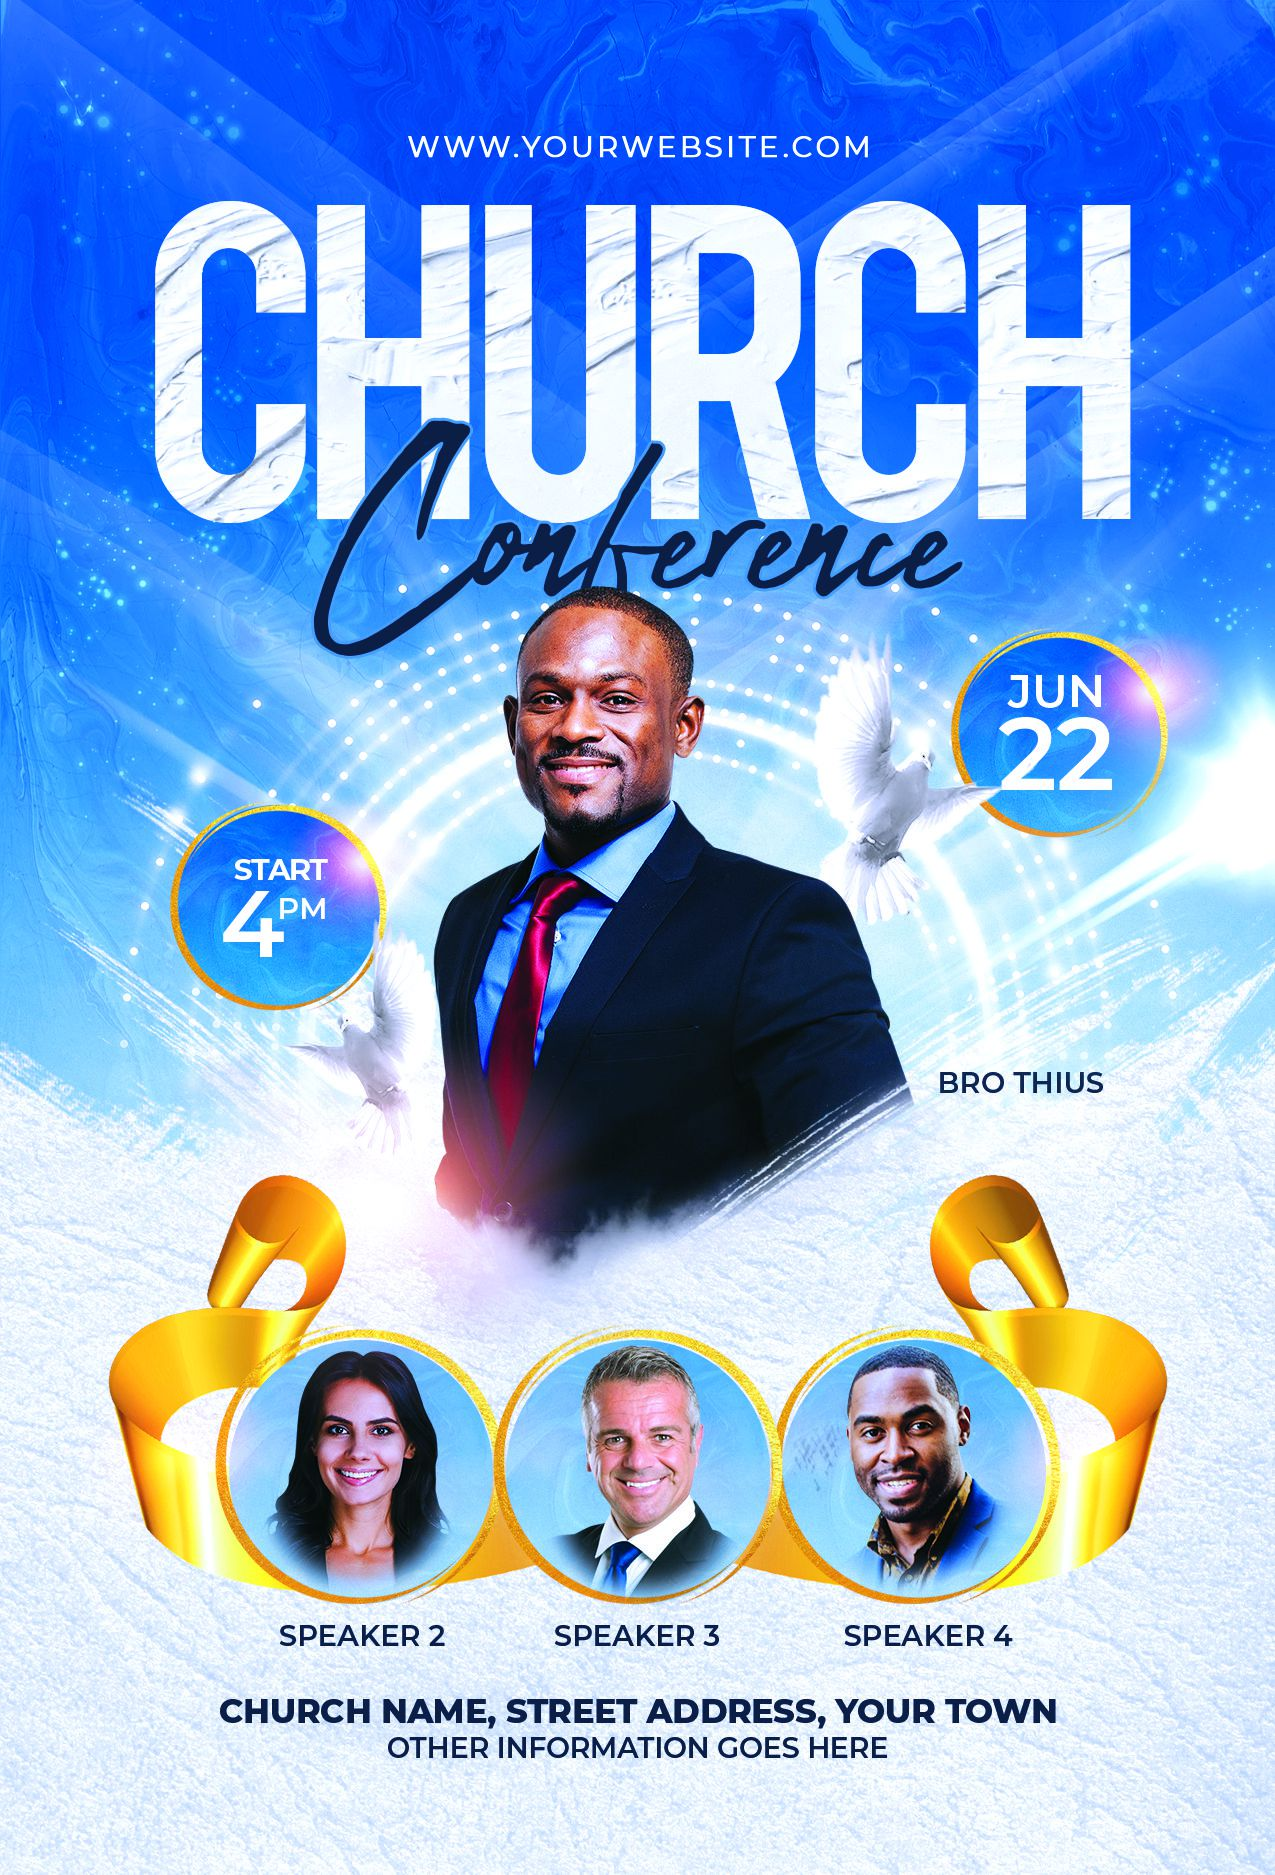 003 Impressive Church Flyer Template Photoshop Free High Resolution  PsdFull